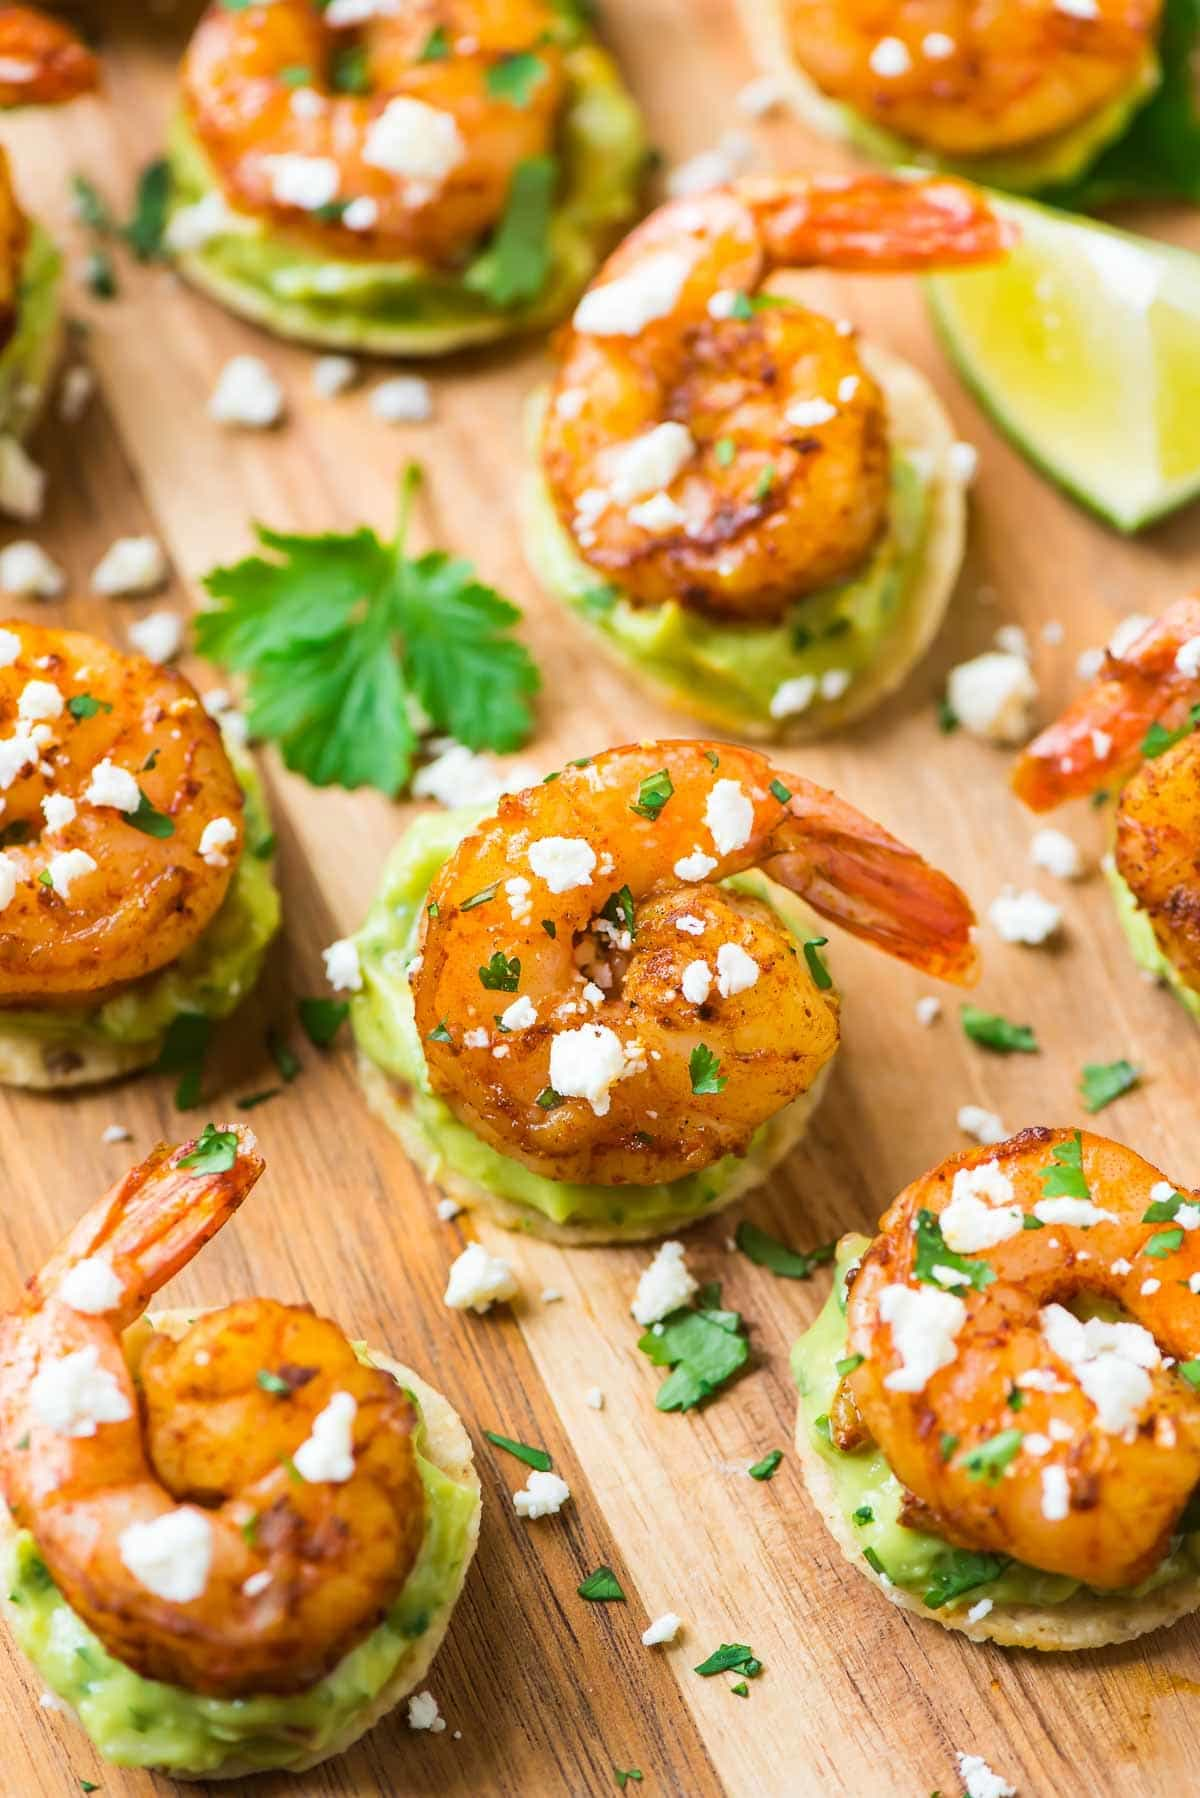 Shrimp Guacamole Bites. Easy, addictive, and great for a football party, summer picnic, or game day! Recipe at wellplated.com | @wellplated